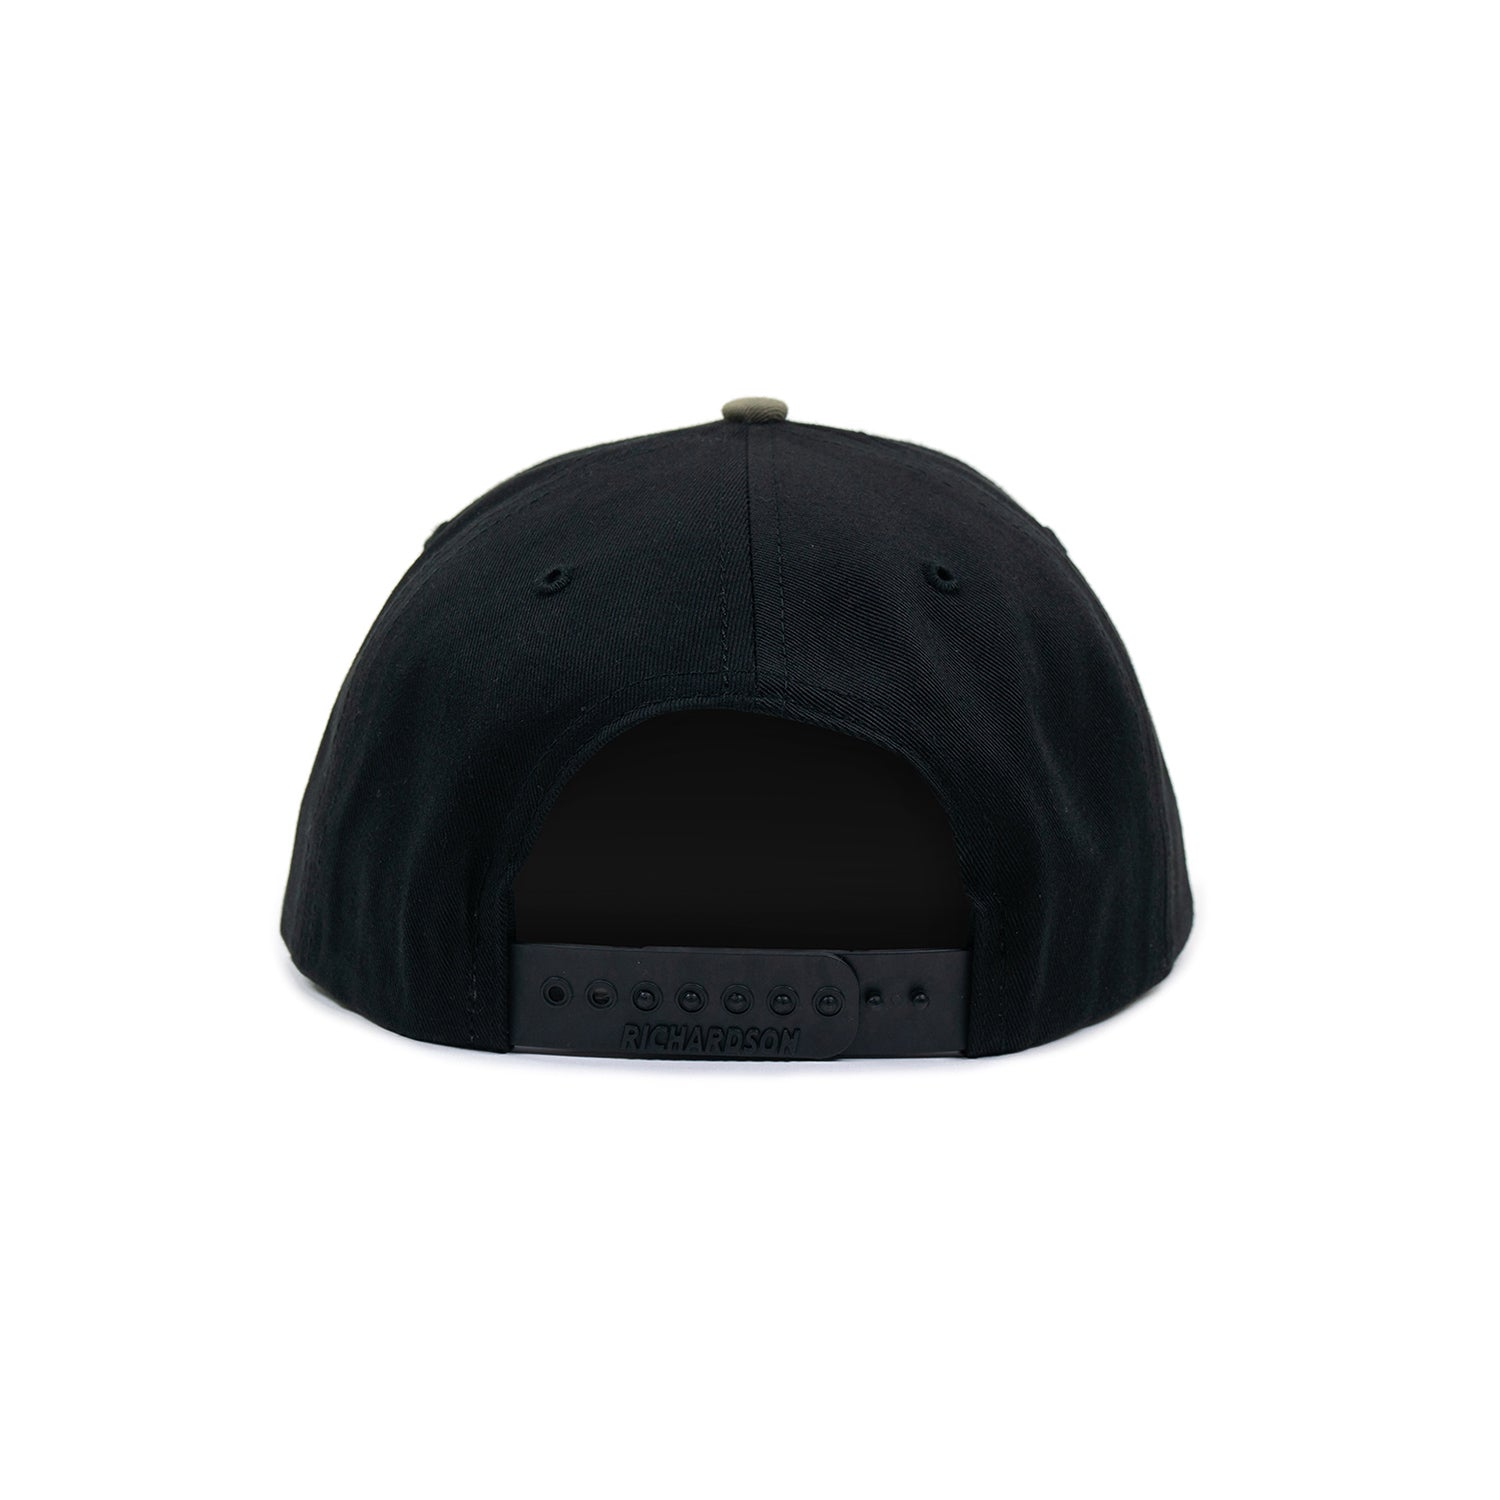 Flylords Cotton Dead Bear Hat